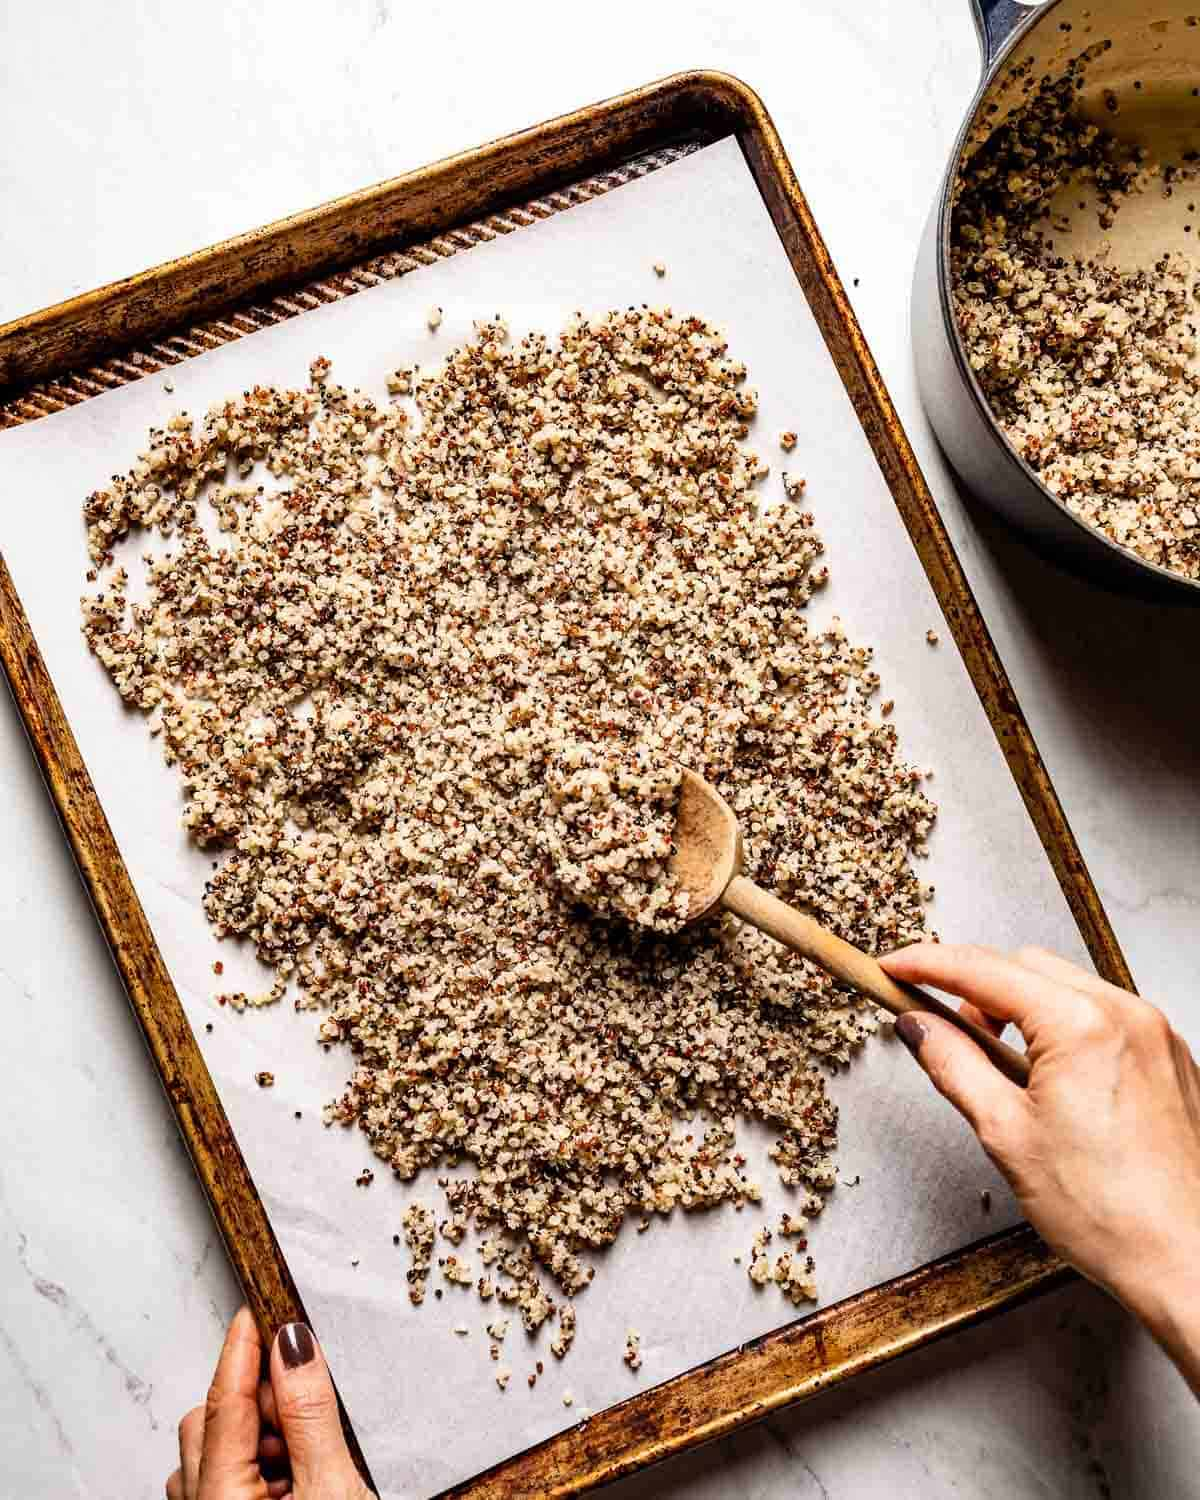 Person spreading quinoa on a baking sheet to cool off